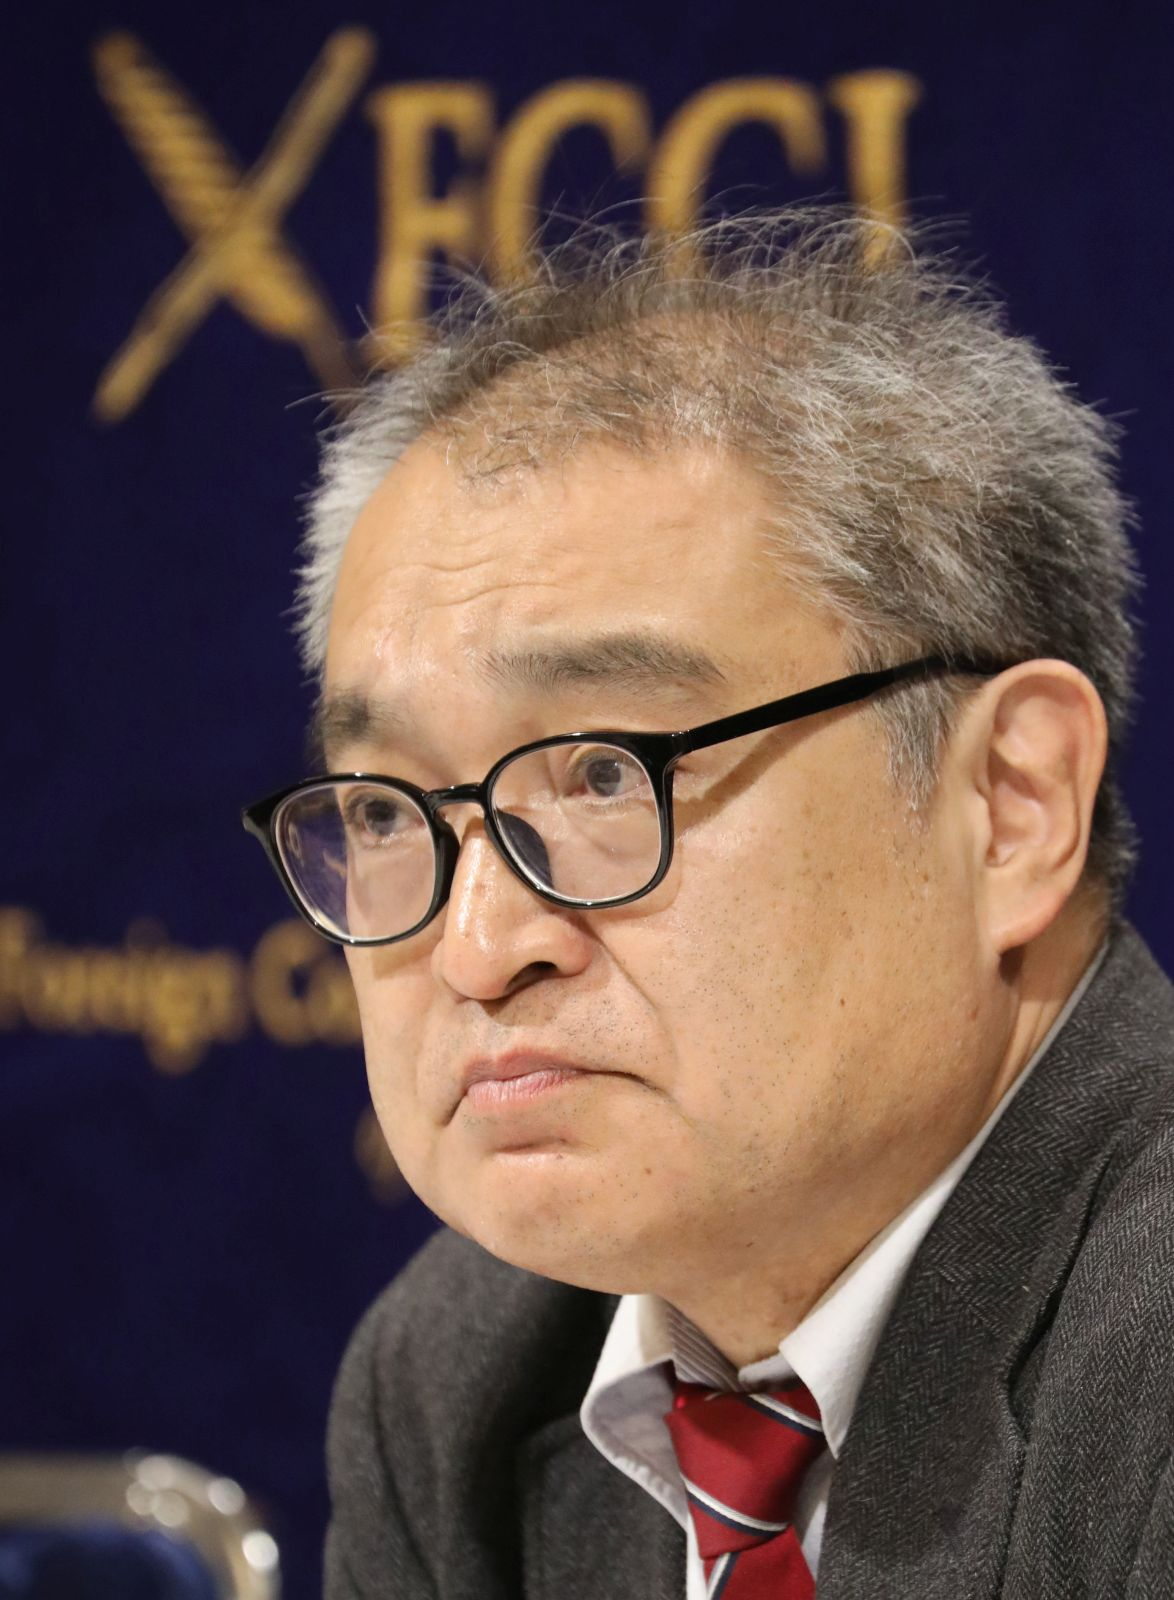 Uemura, It's Pointless to Pursue Your 'Comfort Women' Defamation Case